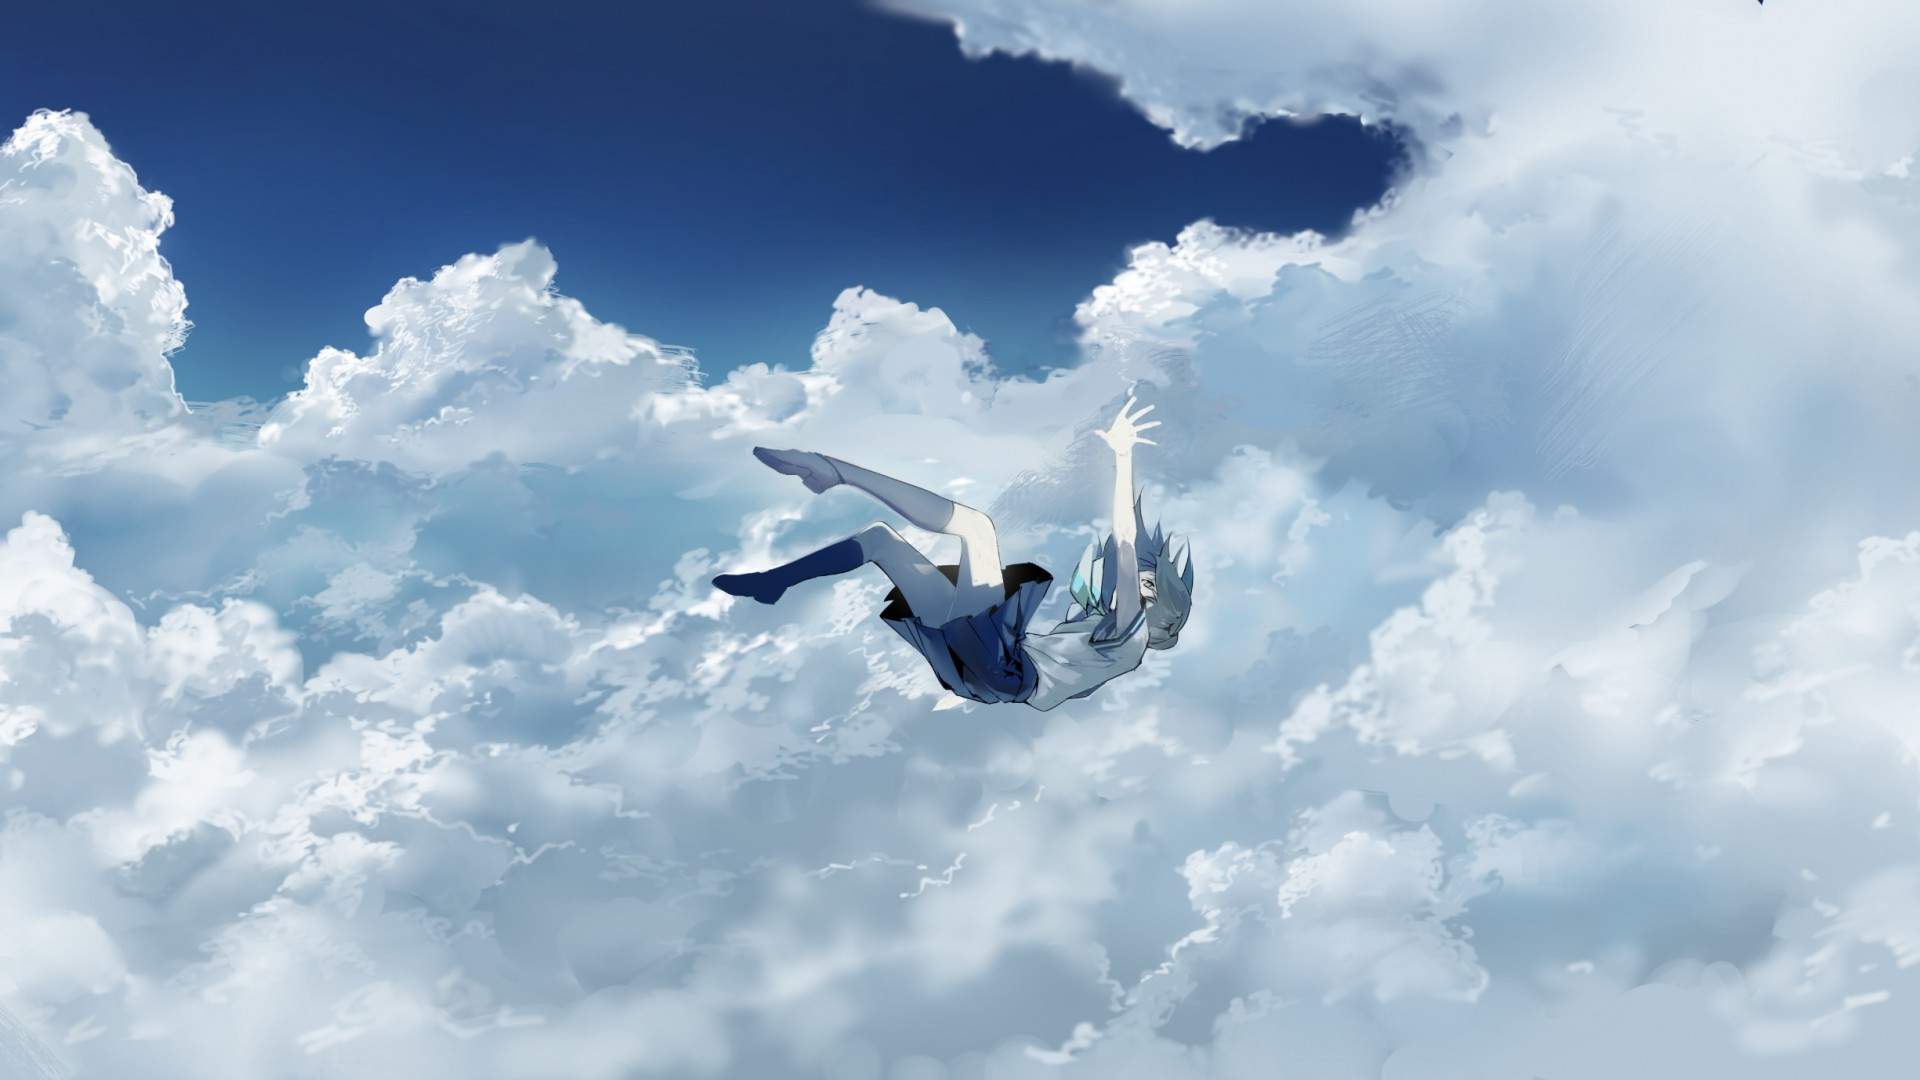 Girl Falling Through The Air Wallpaper Download 1920x1080 Anime Girl Falling Down Clouds Sky